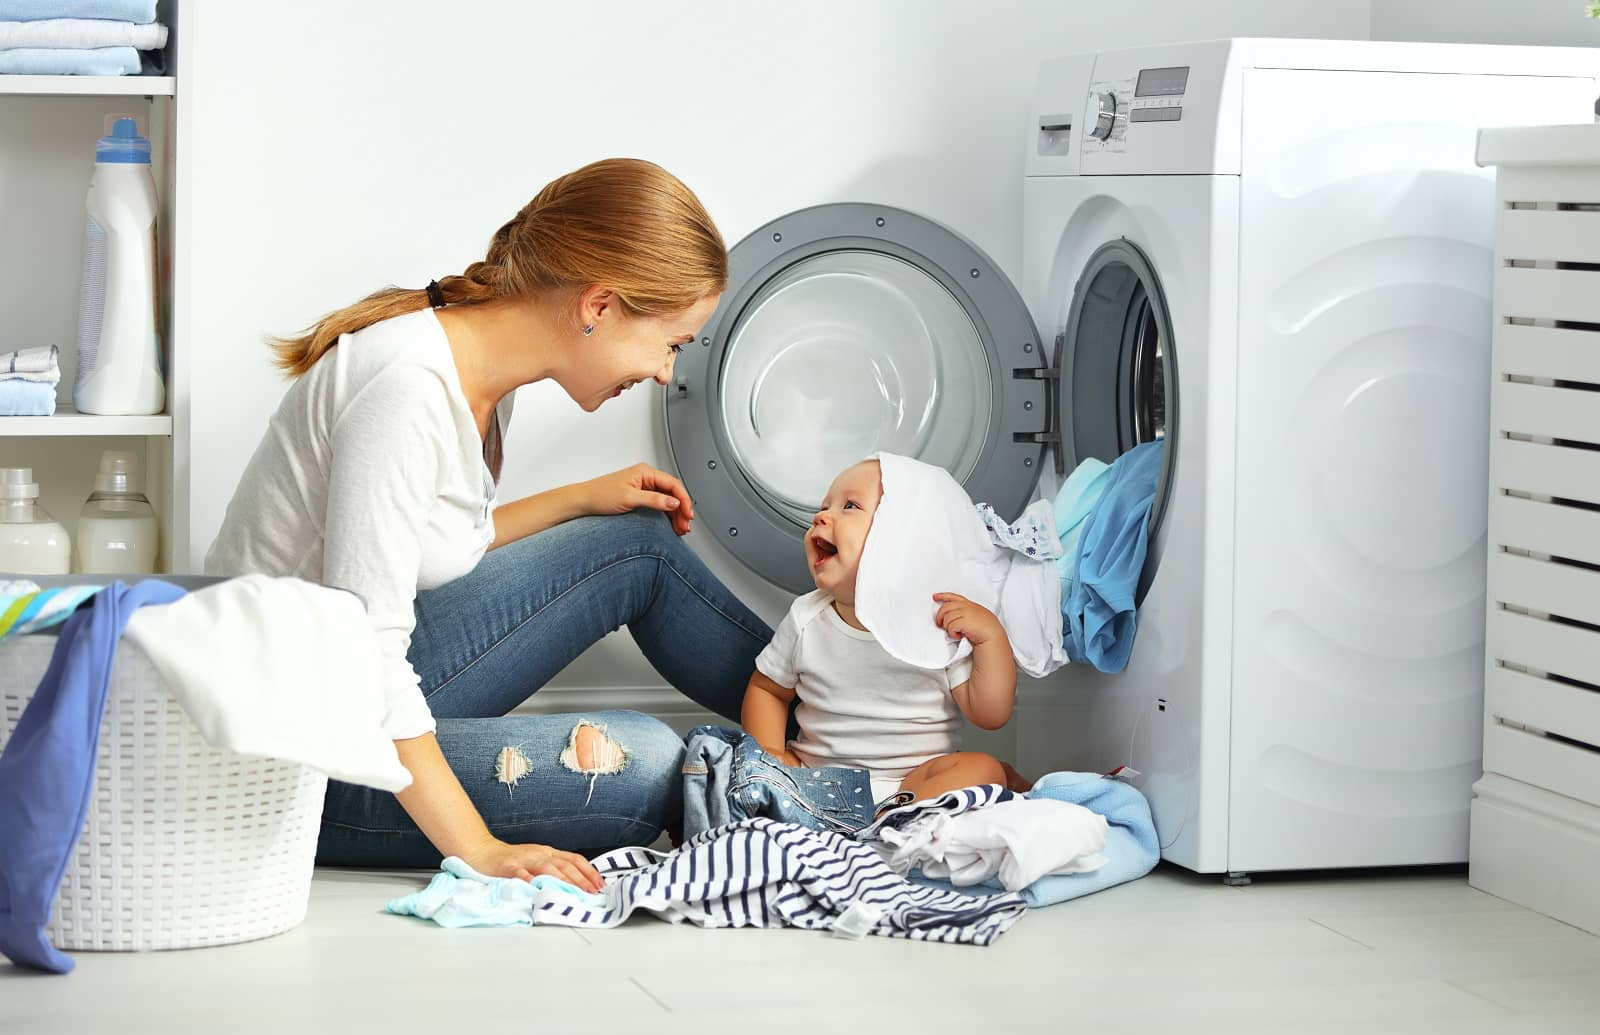 https://devices4home.com/wp-content/uploads/2019/02/washing-machine-min.jpg